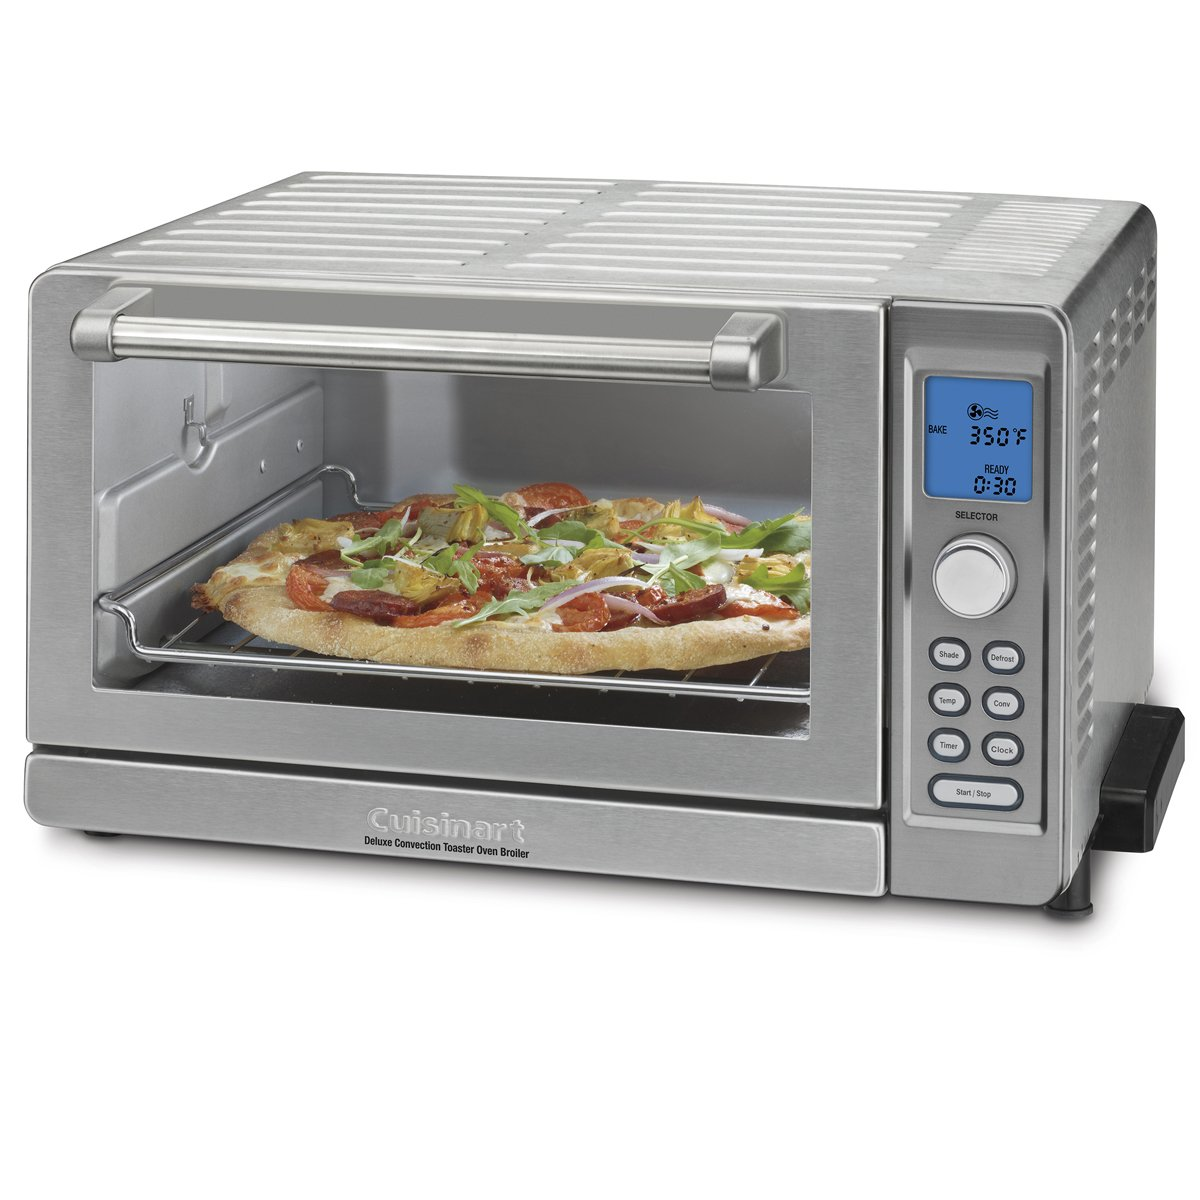 Amazoncom Cuisinart Convection Toaster OvenBroiler Deluxe